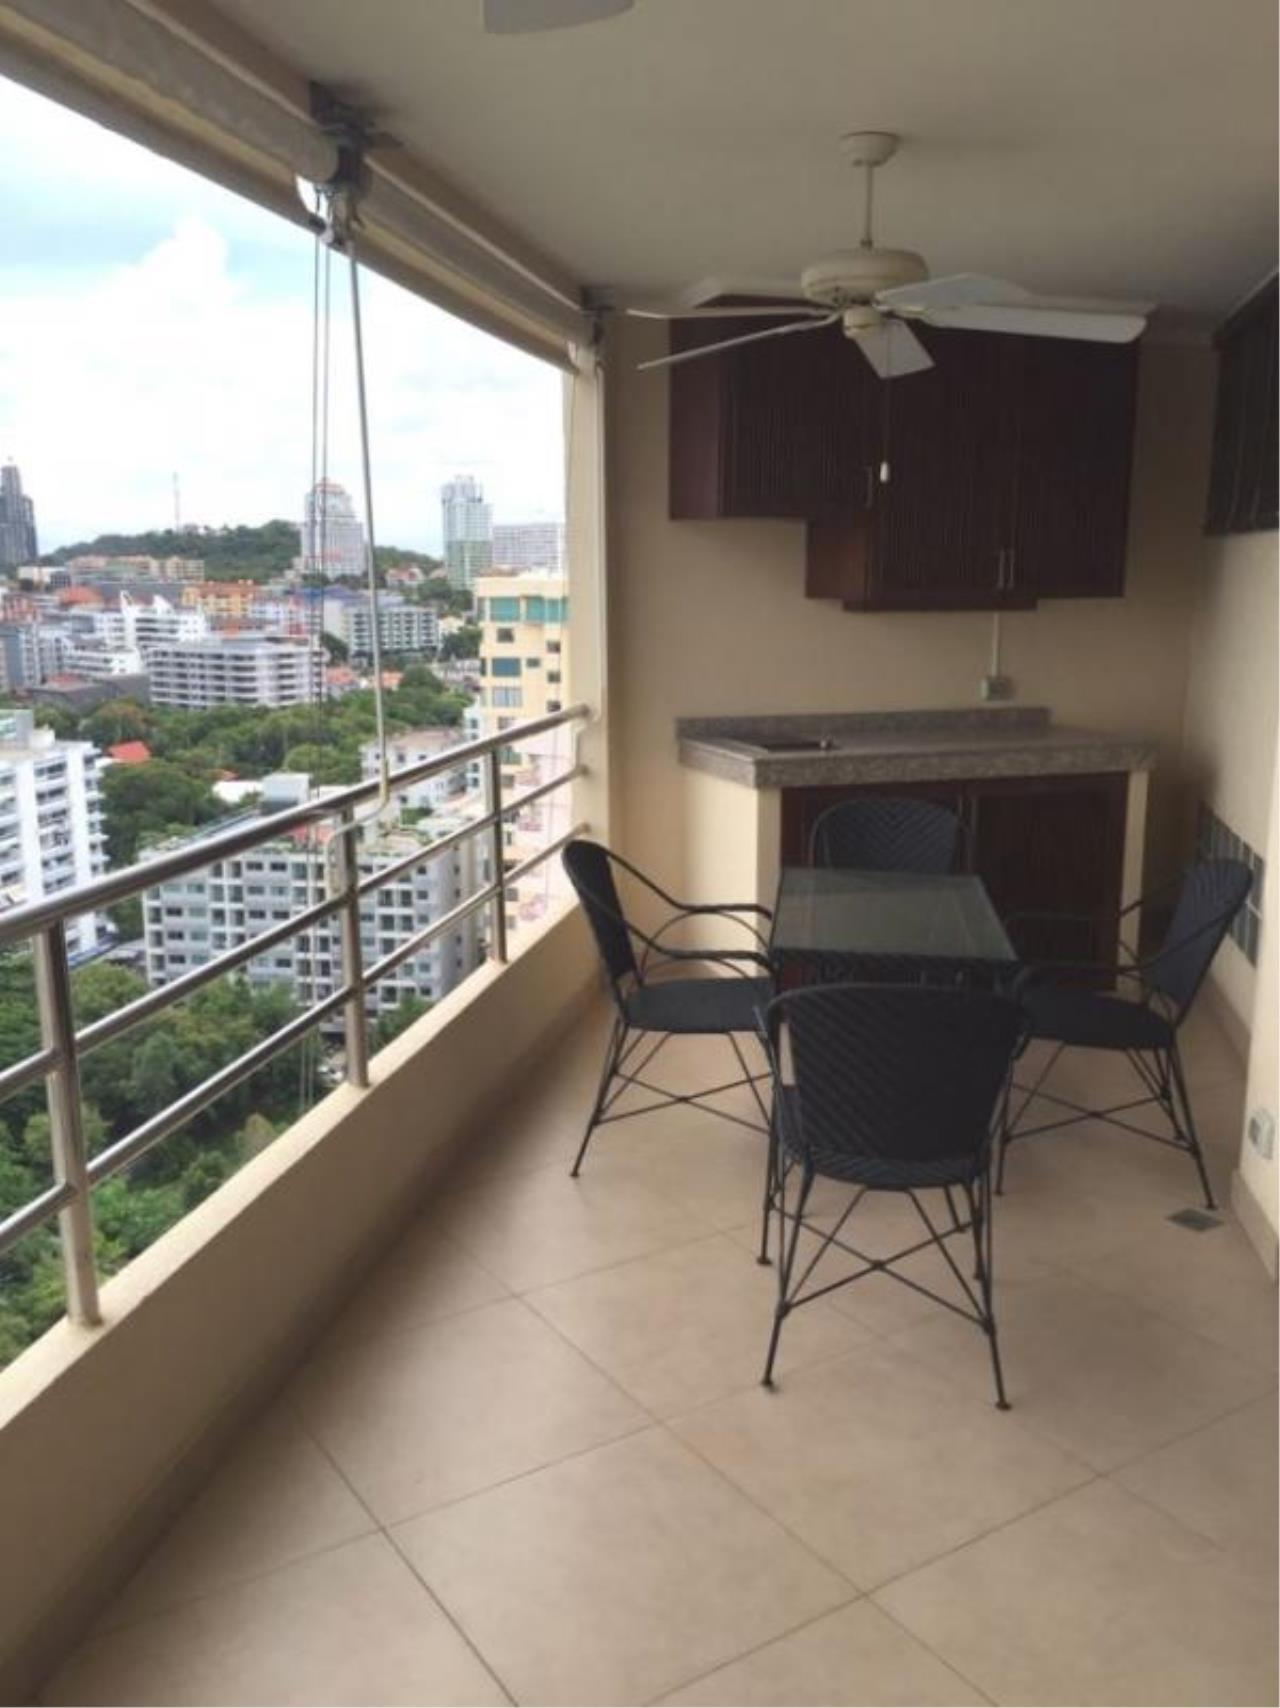 RE/MAX Town & Country Property Agency's Sea View condo for sale in Pratamnak 3